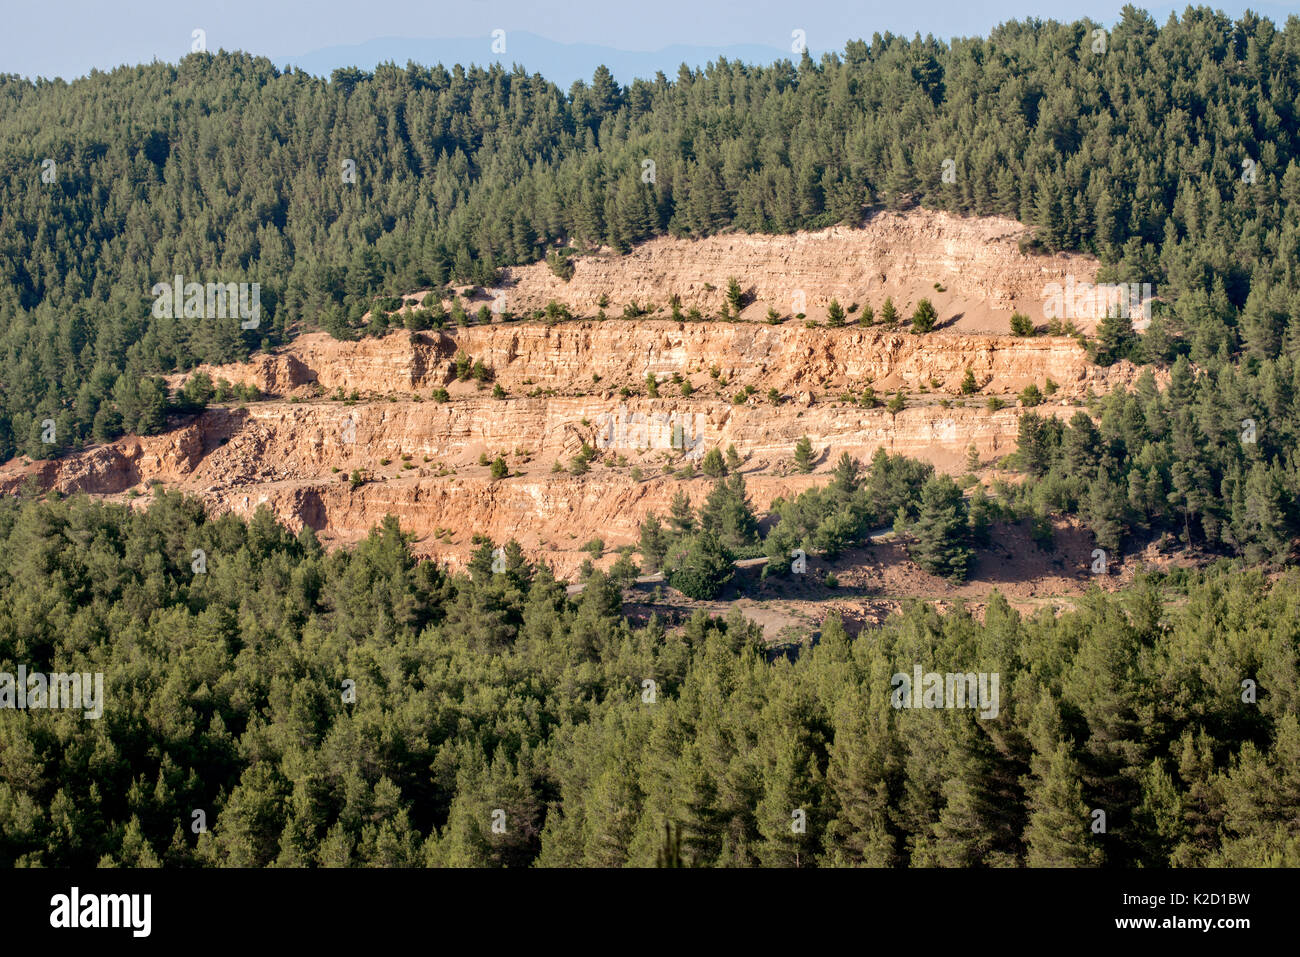 Forest clearing (pine tree cutting) Mantoudi, in the northern part of Euboea (Evia) island, The forest of Aleppo Pine (Pinus halepensis) was partially cleared by a Greek mining company for its magnesite mining operations. Greece, Mediterranean, July 2014. - Stock Image